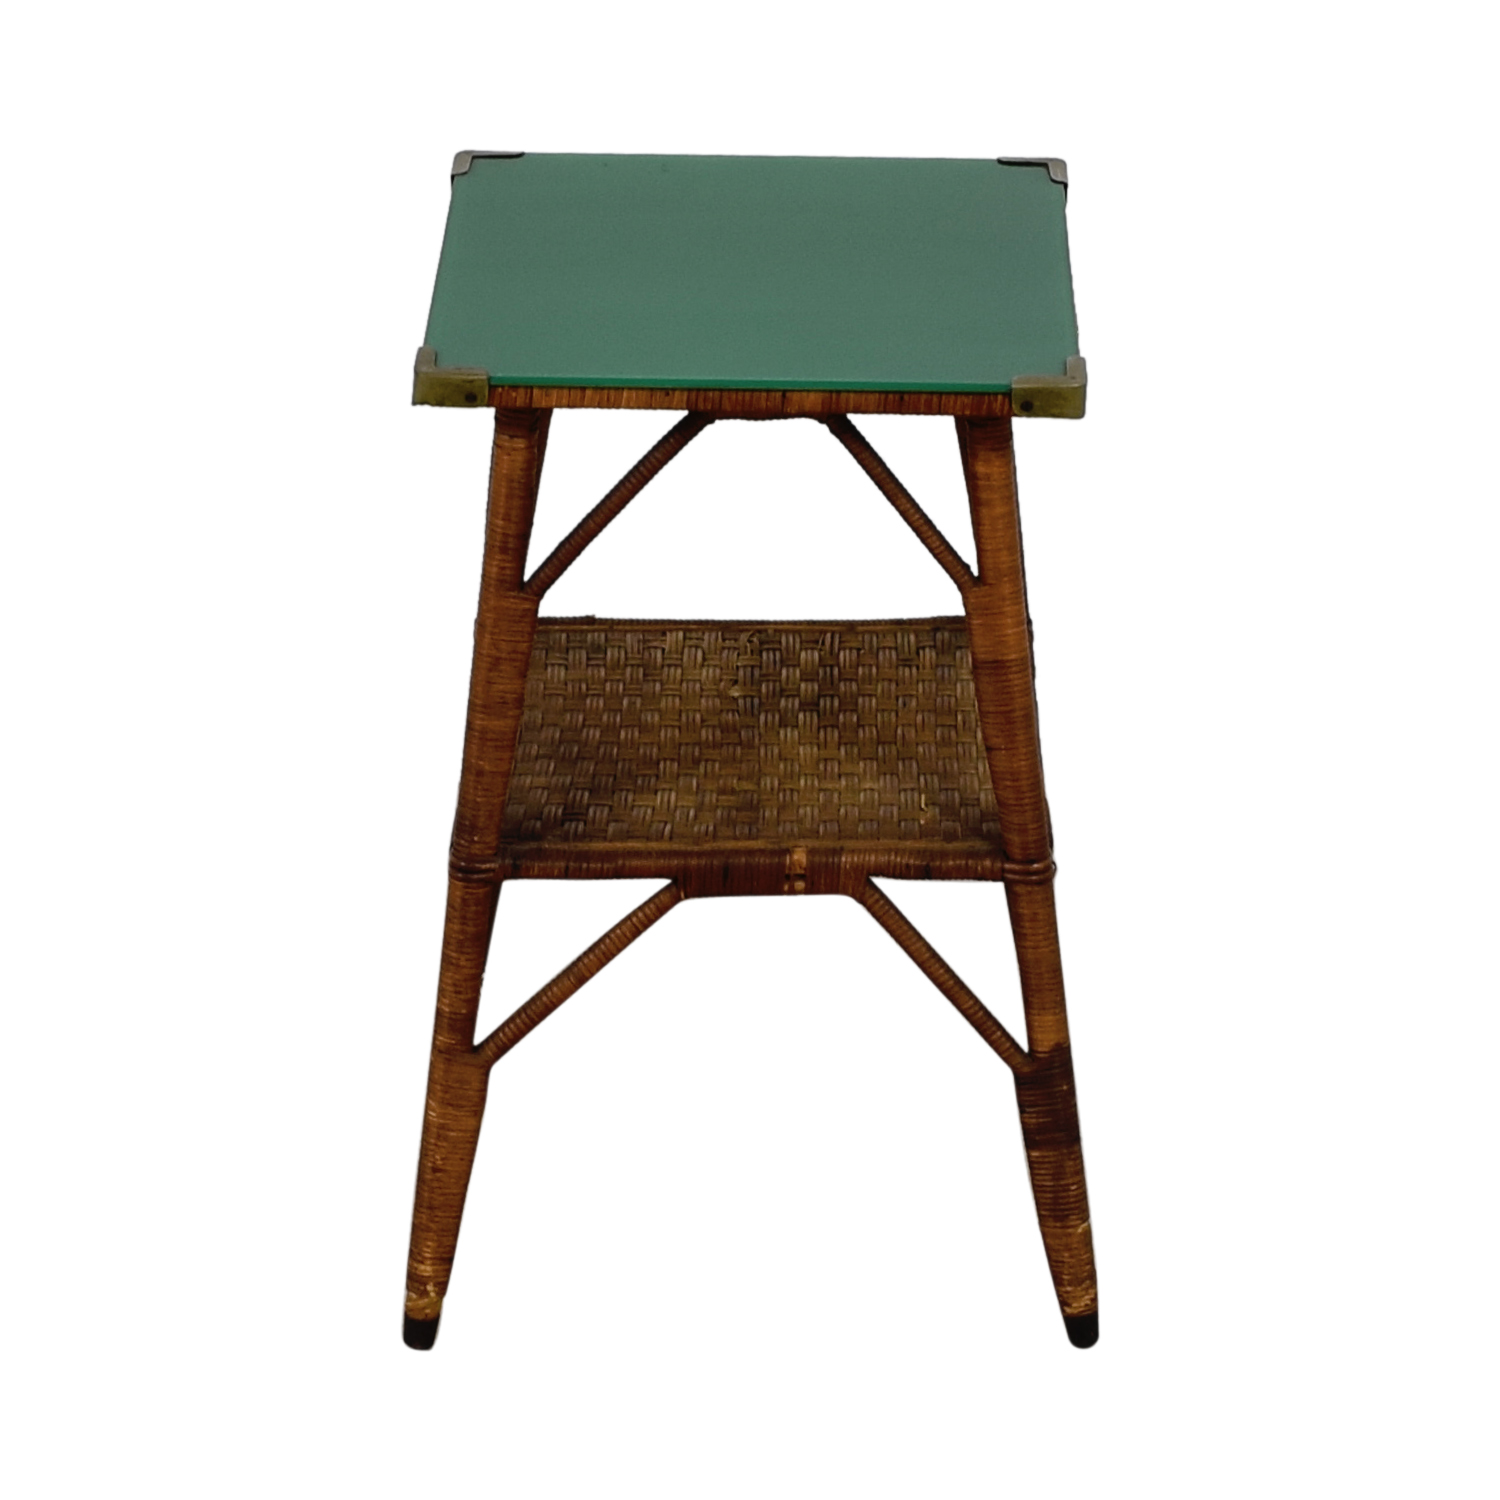 shop  Wicker End Table with Green Glass Top online